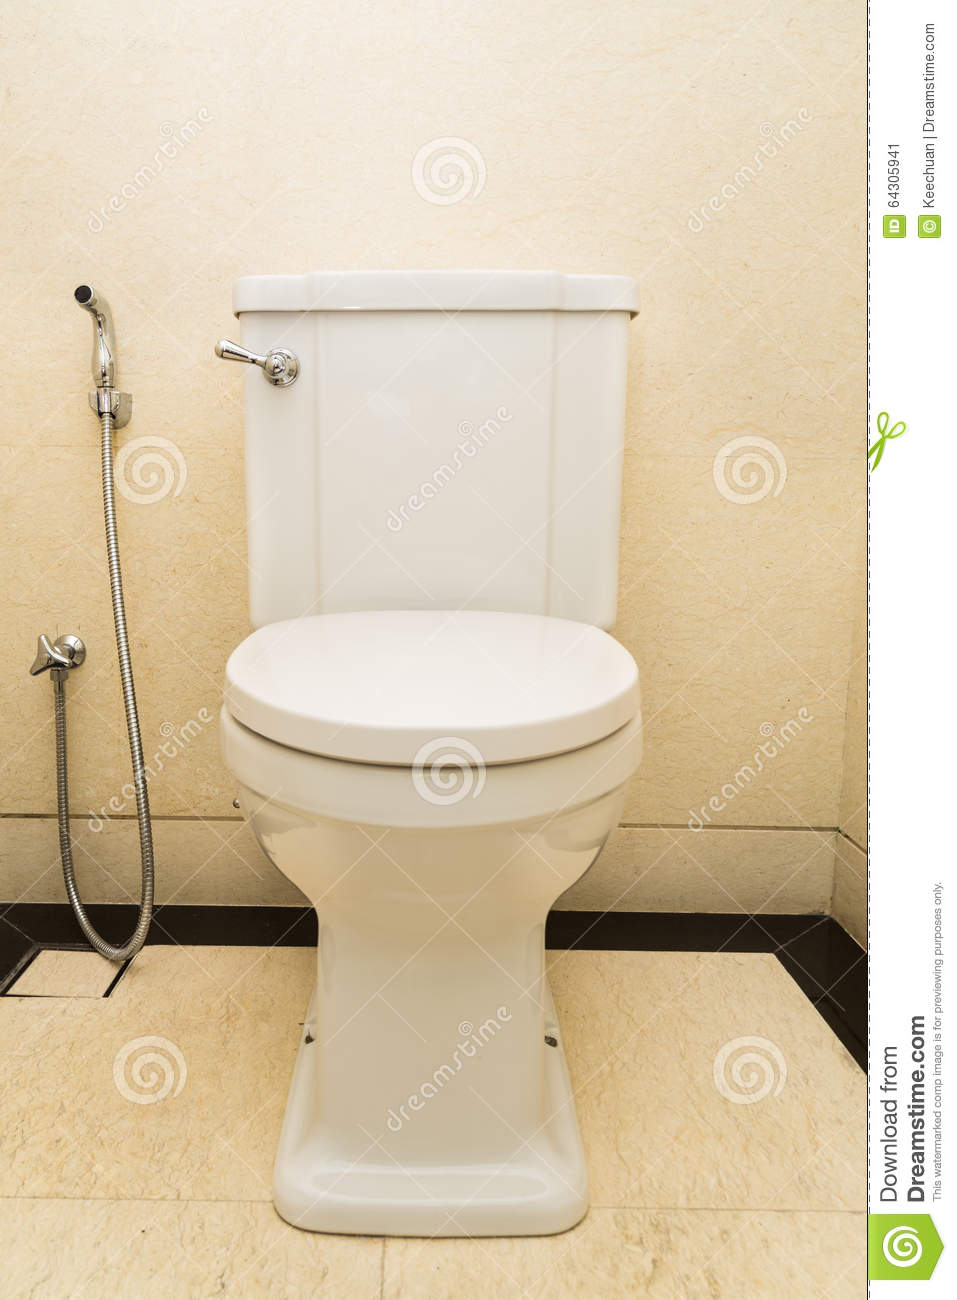 Toilet And Bidet In A Modern Bathroom Stock Photography